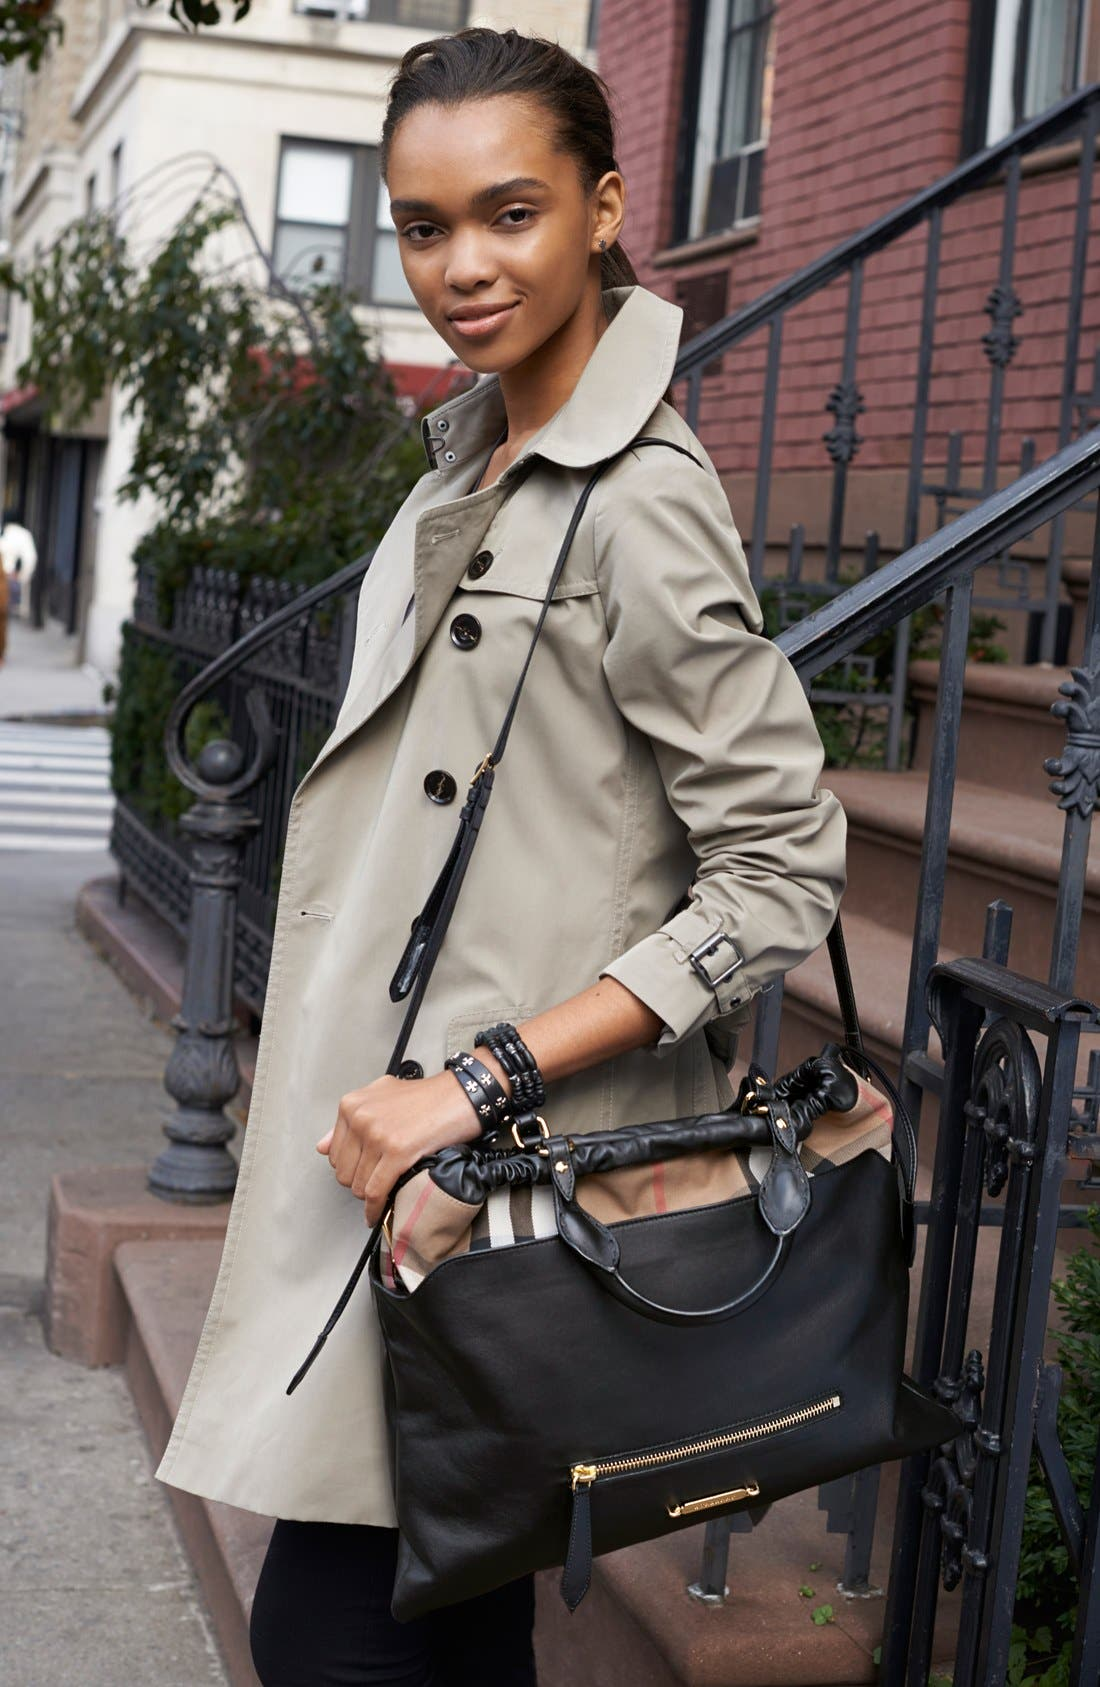 Main Image - Burberry Bag, Burberry London Trench & Burberry Brit Tee, Pants